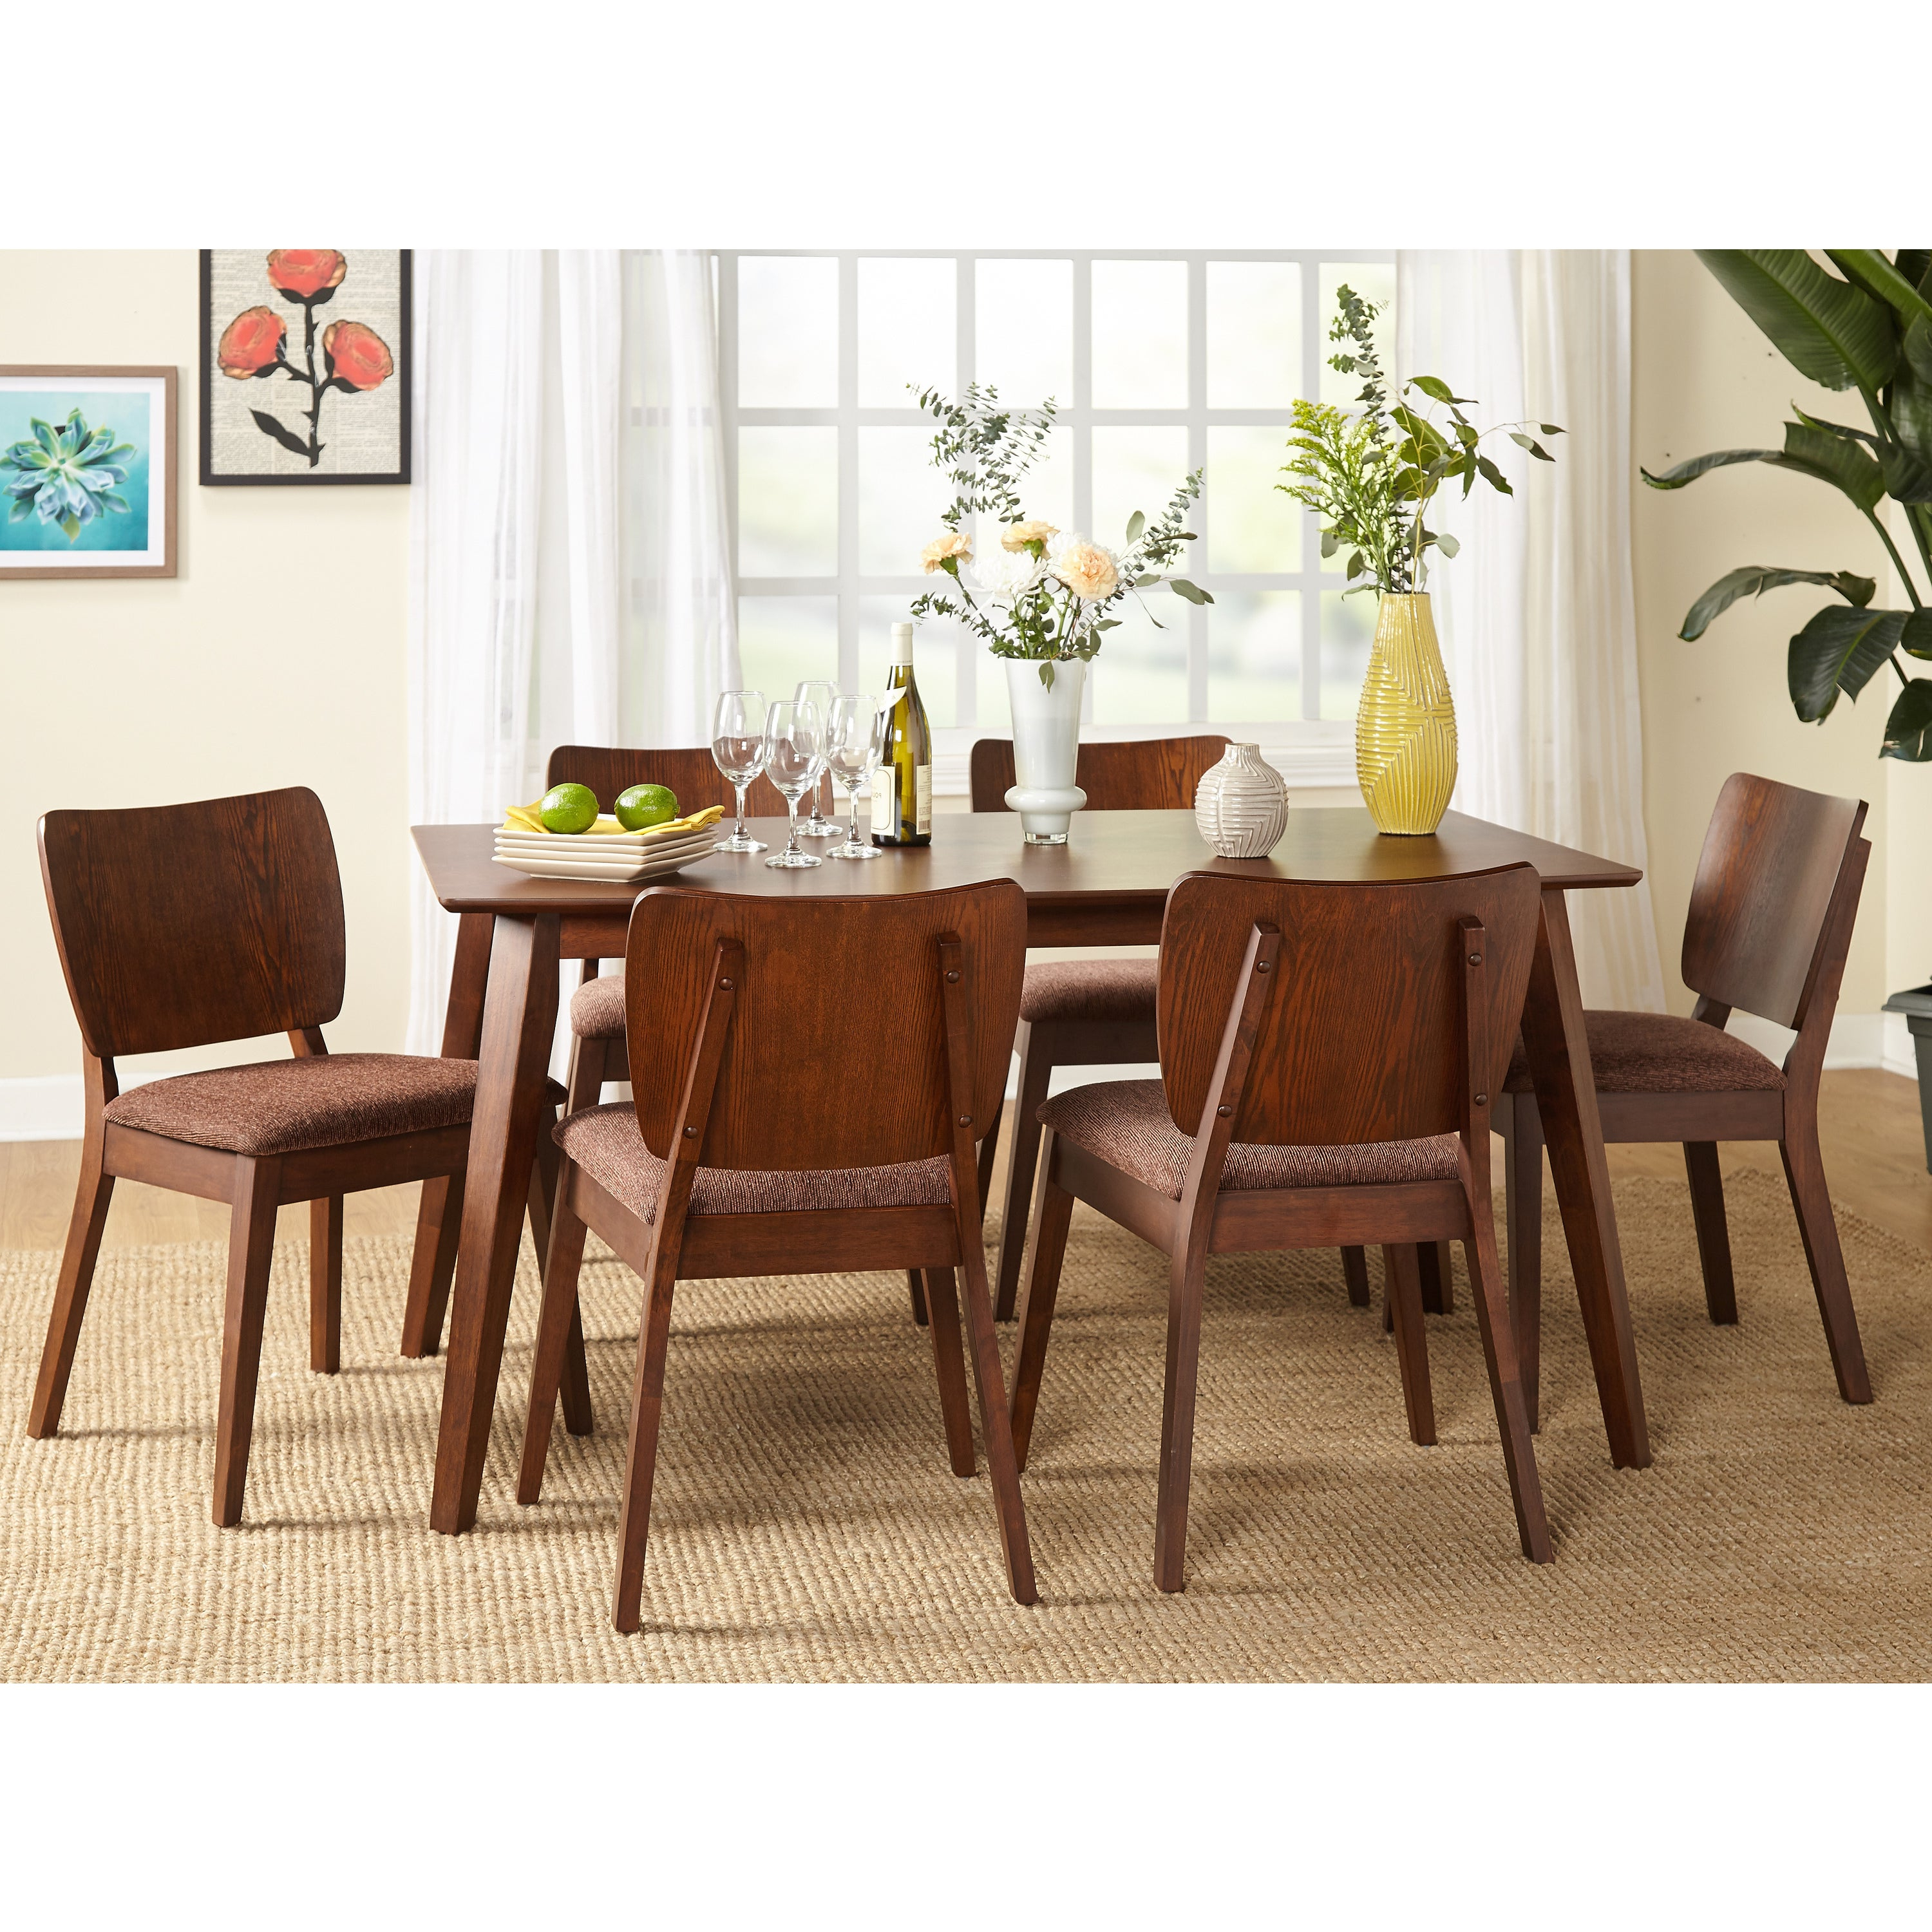 Buy 5 Piece Sets Kitchen & Dining Room Sets Online At Overstock In Most Up To Date West Hill Family Table 3 Piece Dining Sets (View 4 of 25)